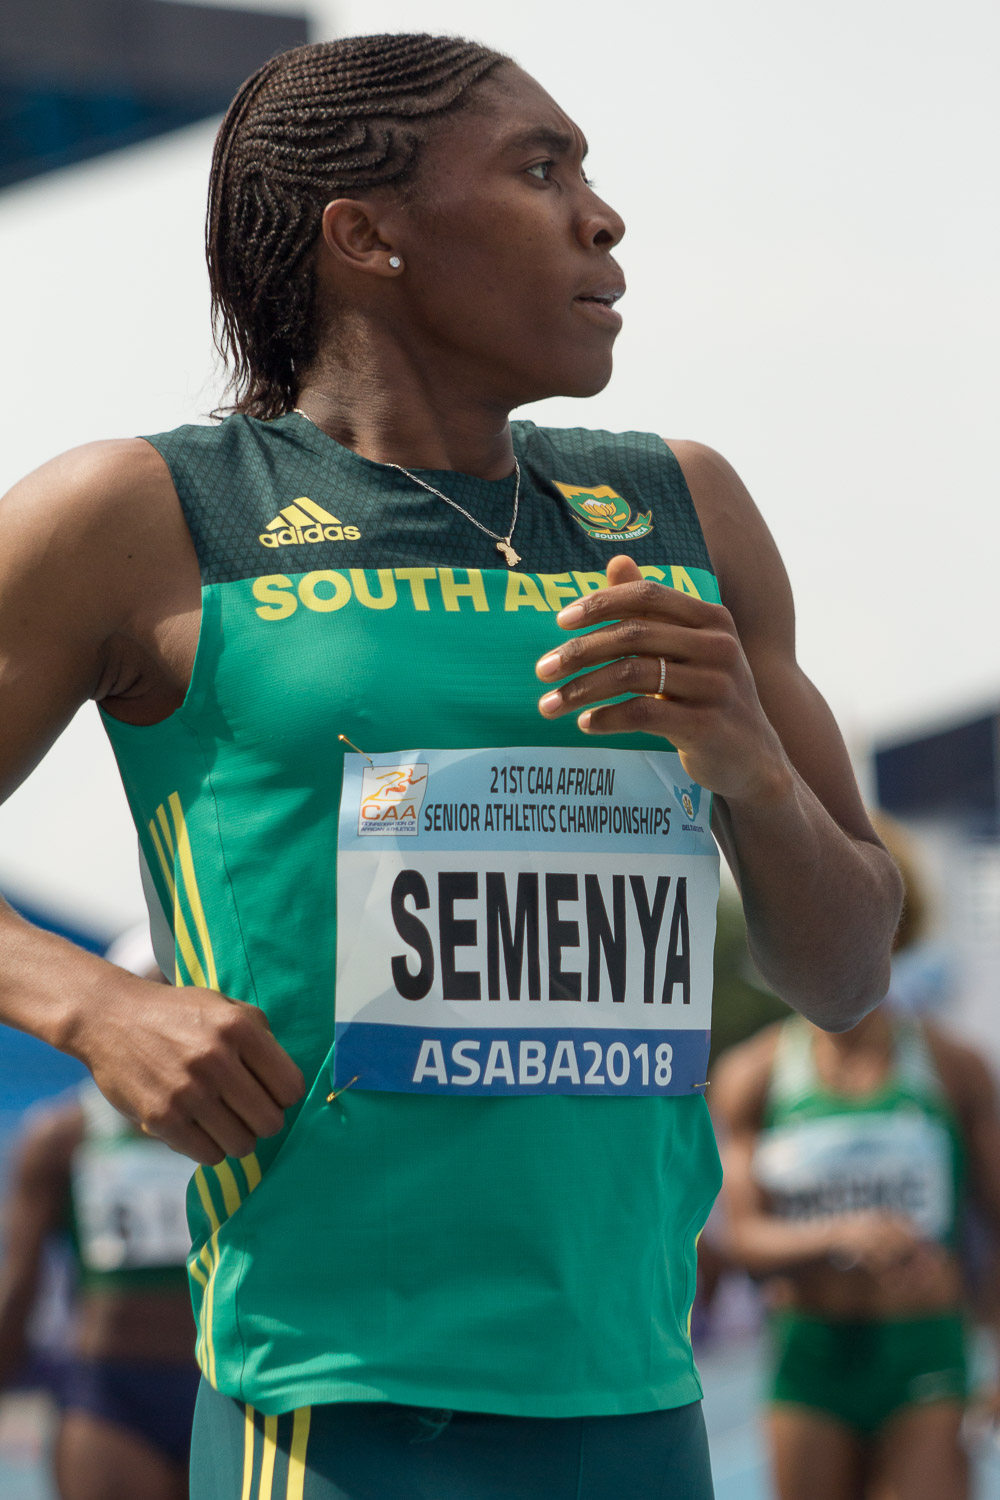 Caster Semenya of South Africa at the 2018 African Athletics Championships